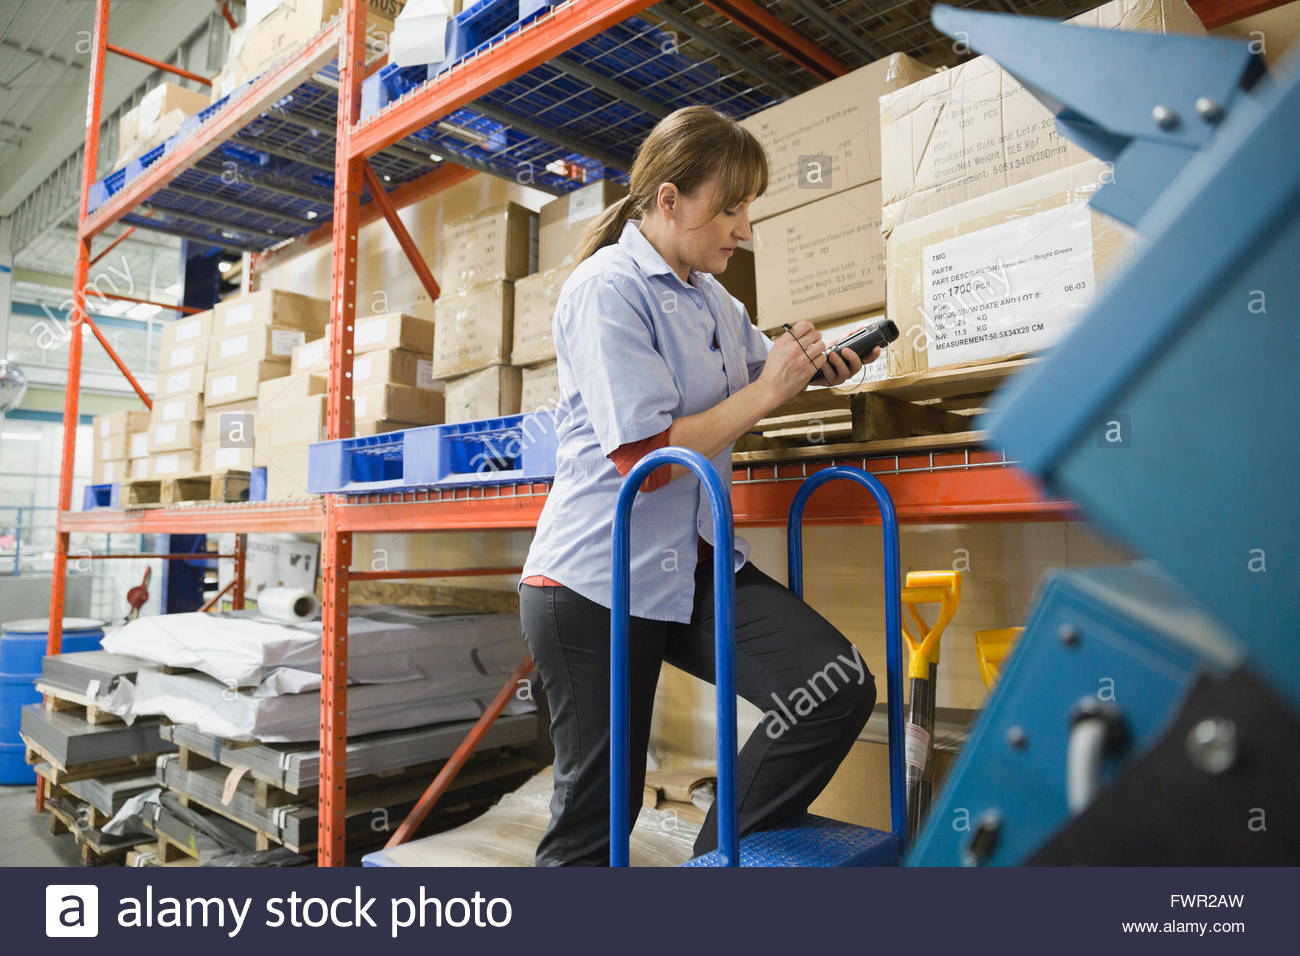 Worker using bar code reader in warehouse - Stock Image